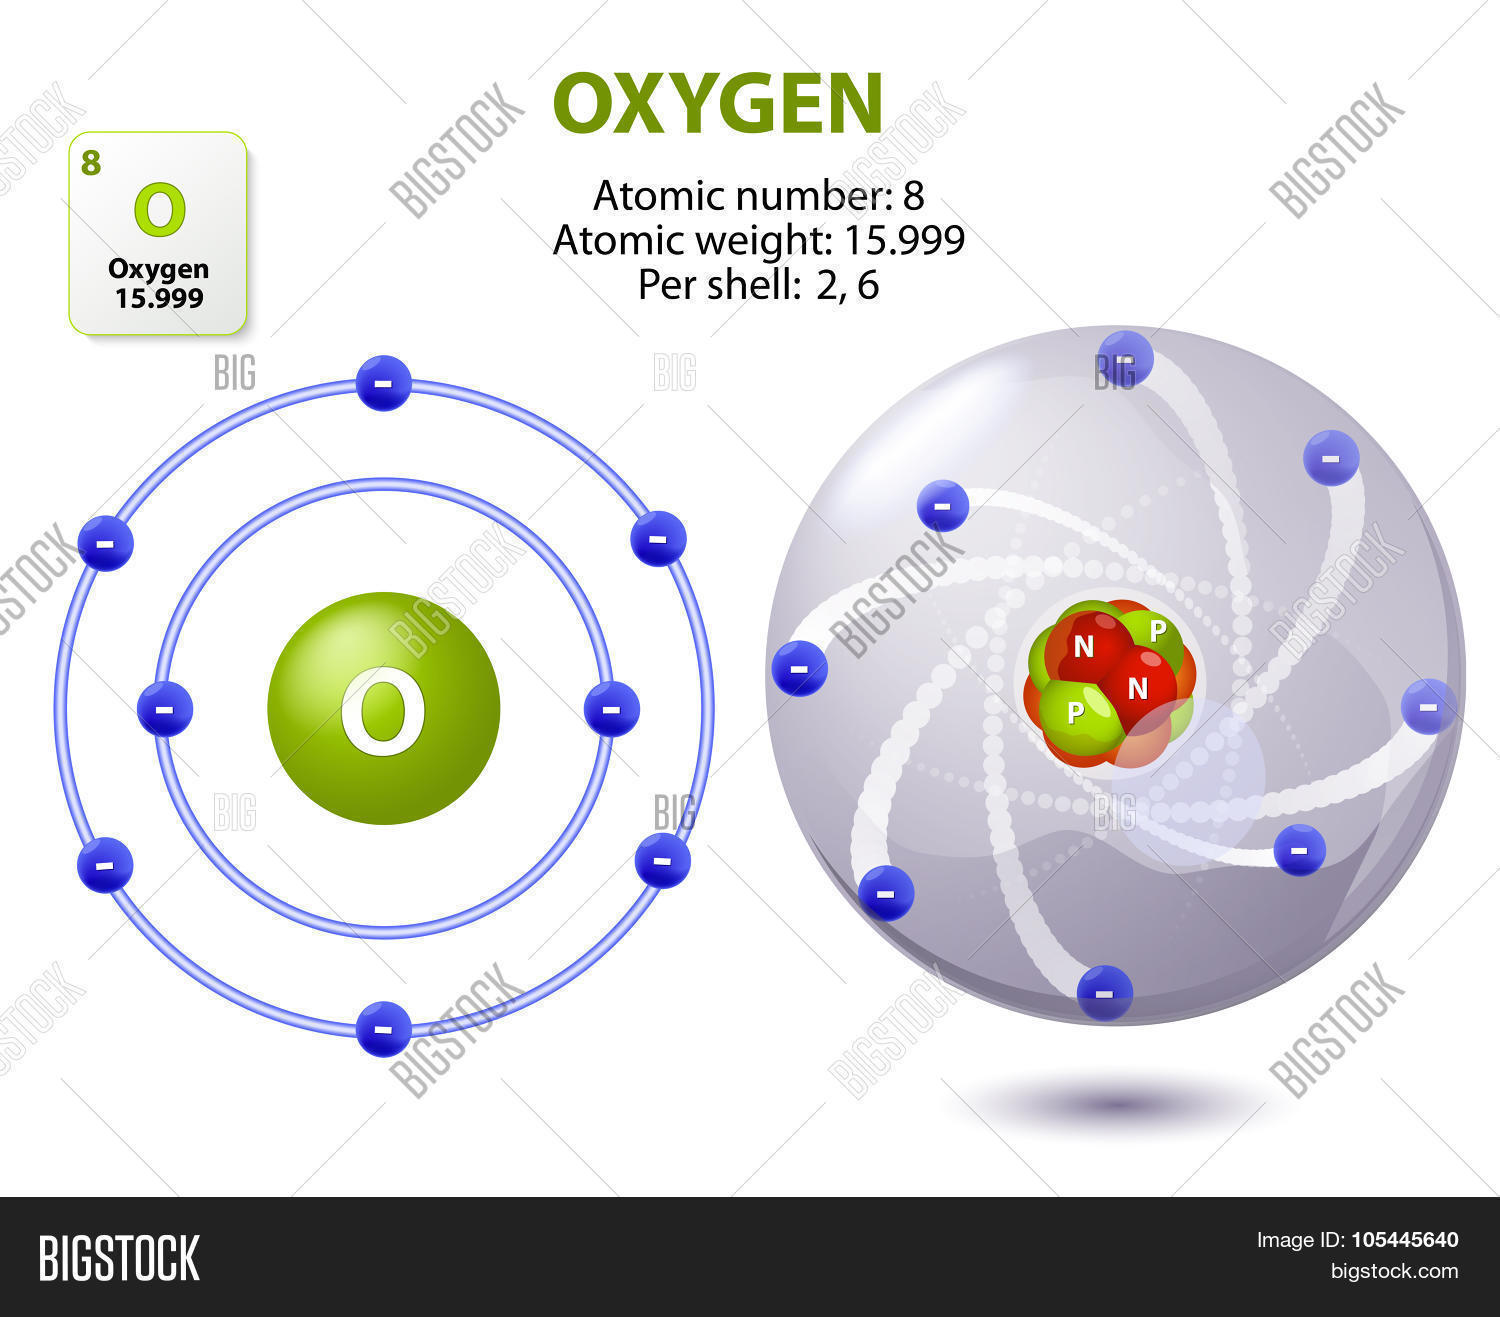 Oxygen Atom Image  U0026 Photo  Free Trial